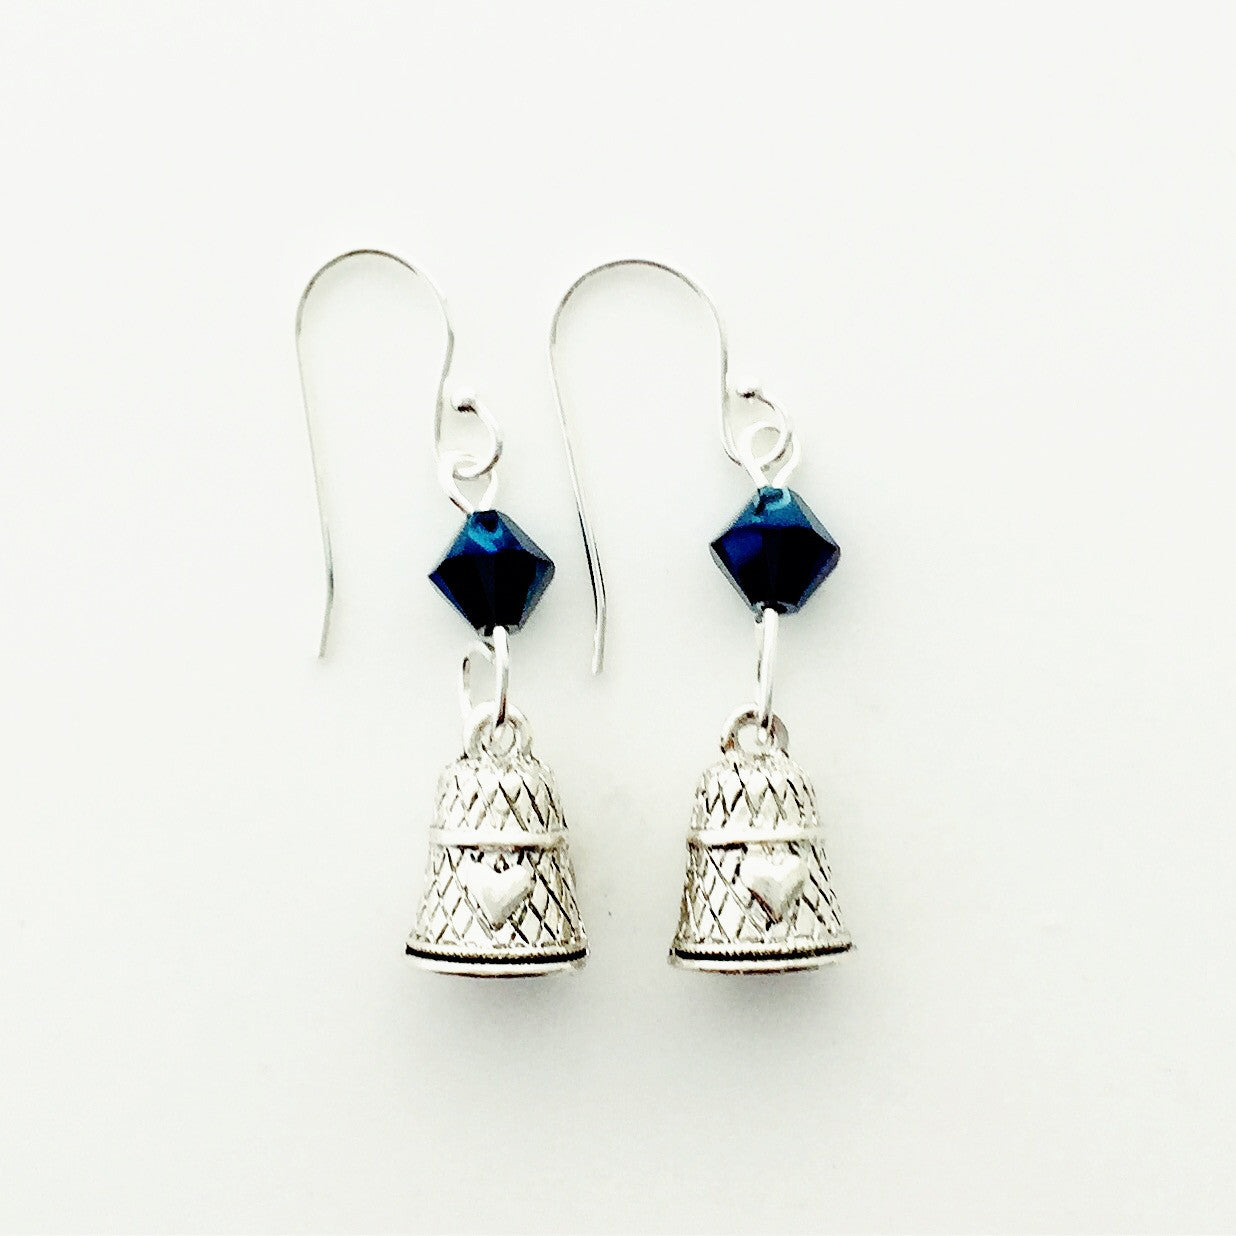 ____ Thimble Silver Earrings with Blue Swarovski Crystals.